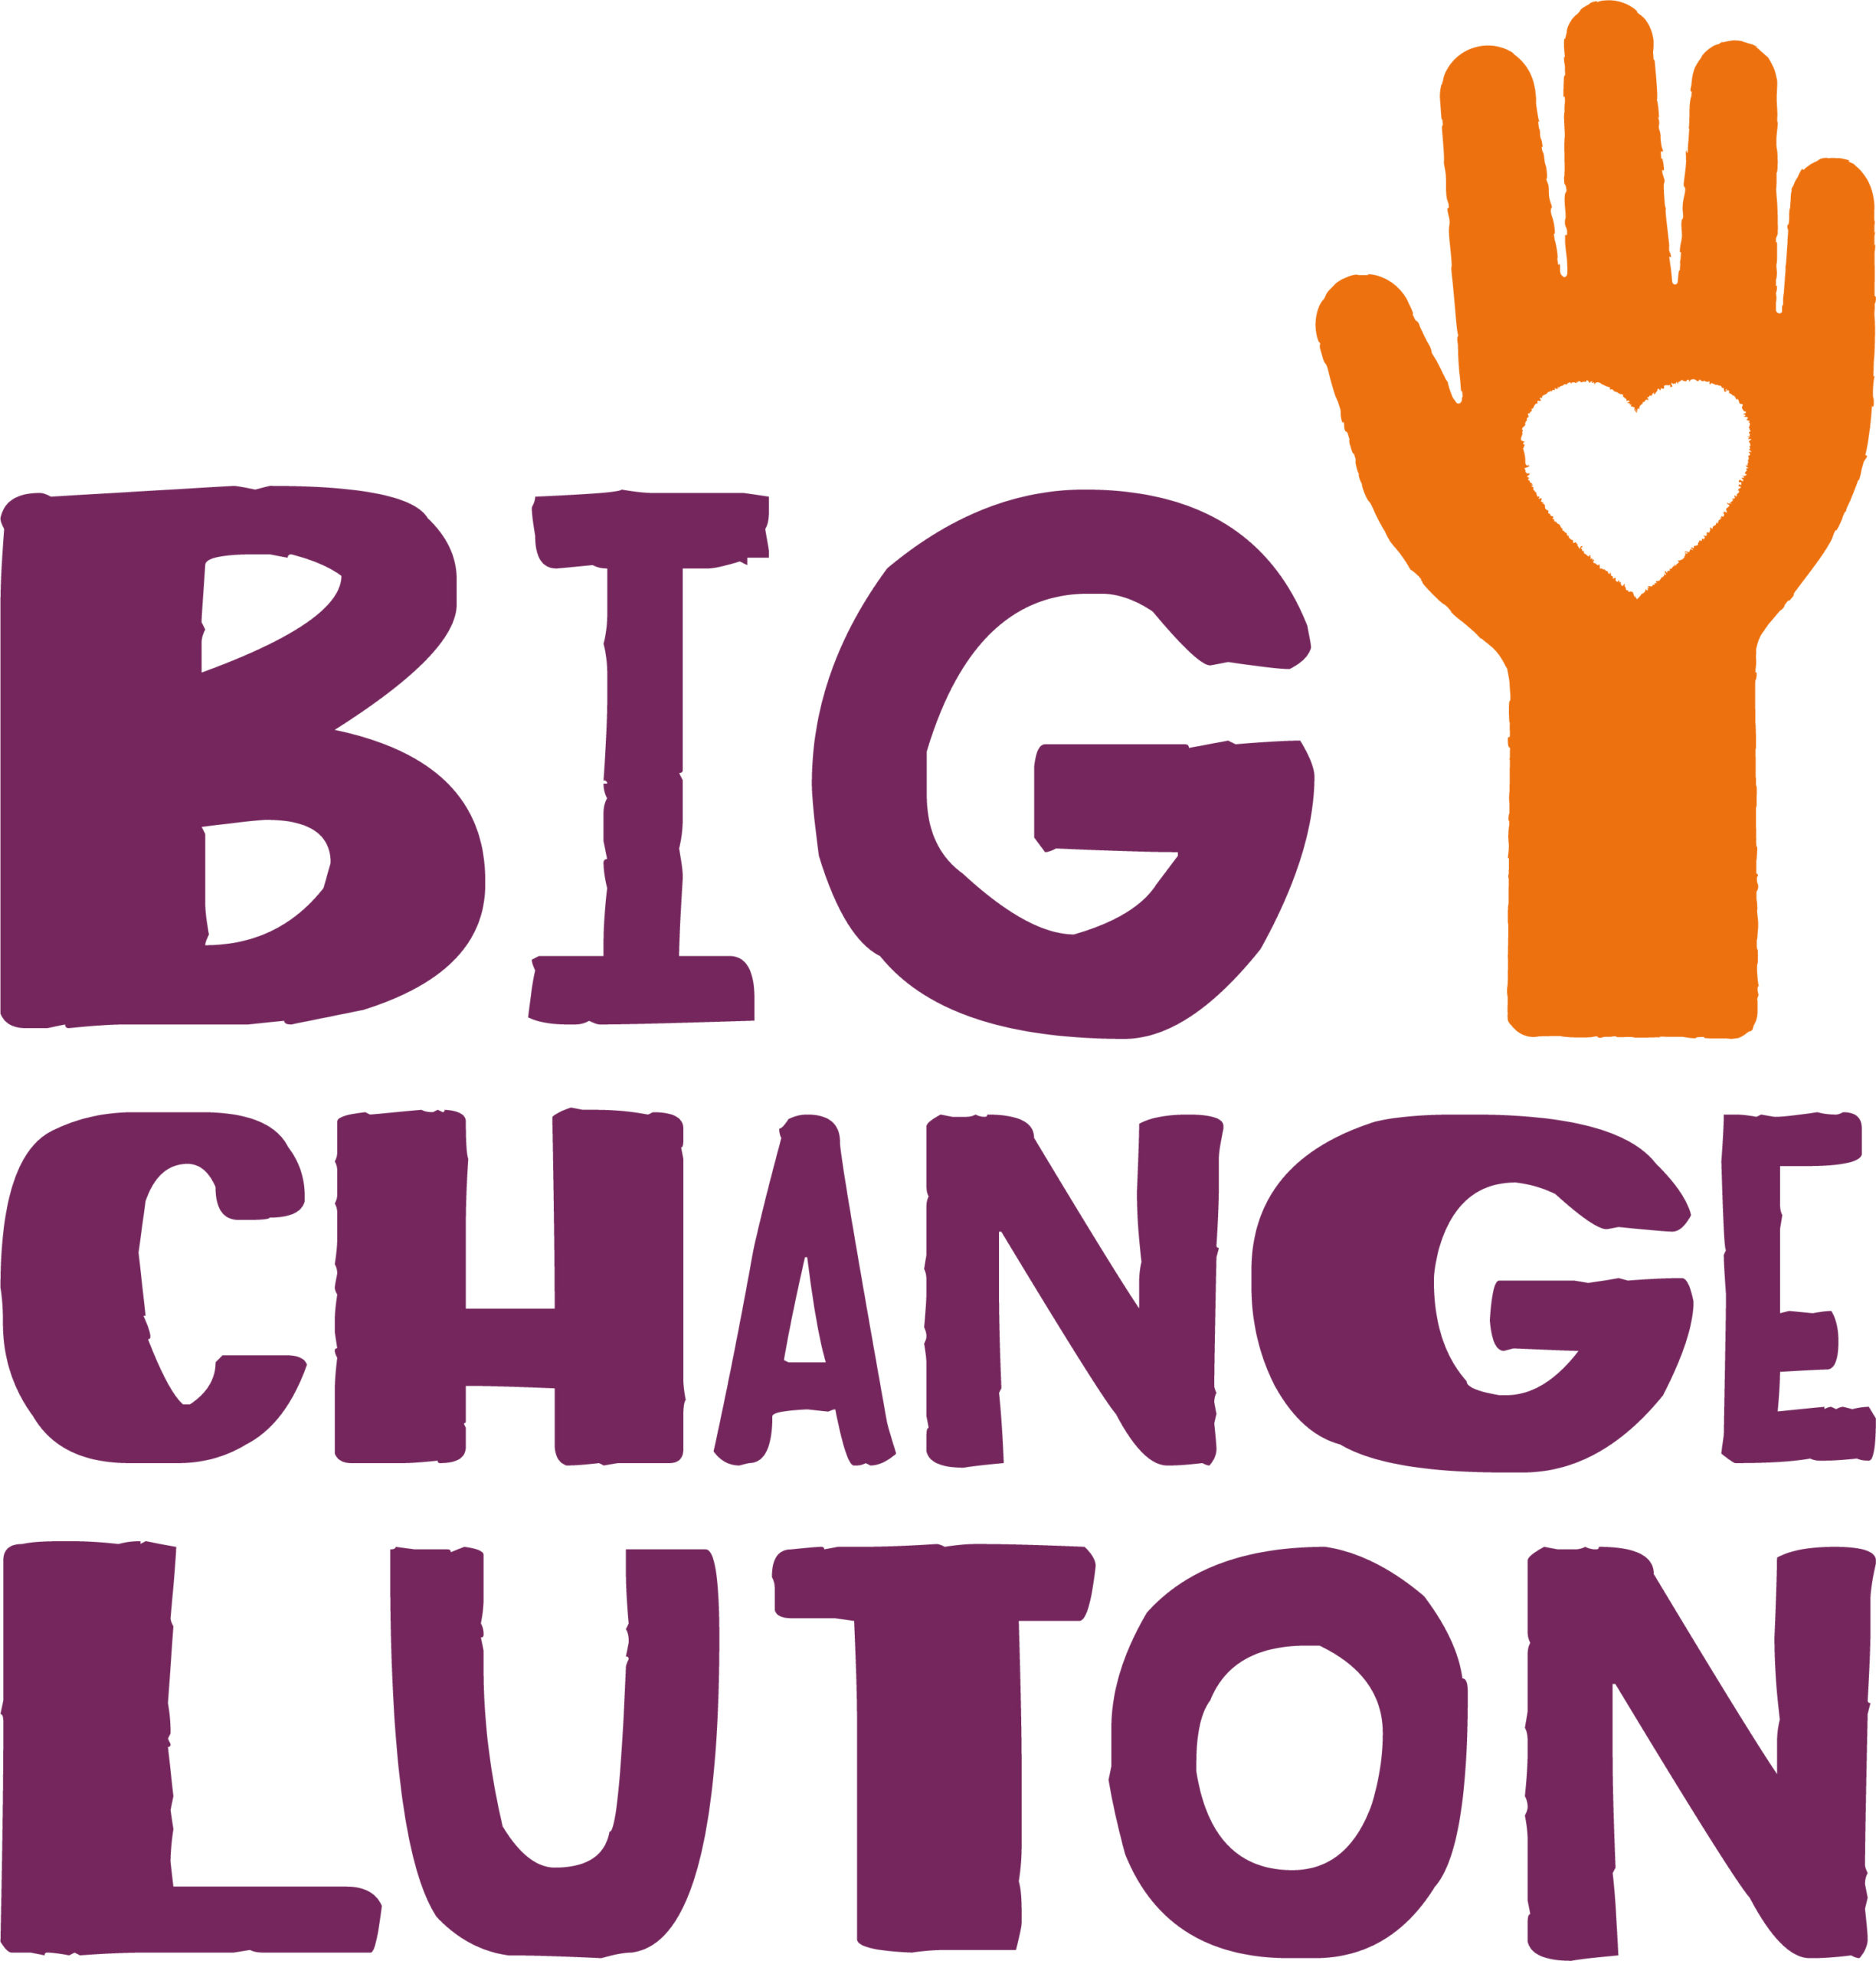 The logo of the Big Change Luton Campaign